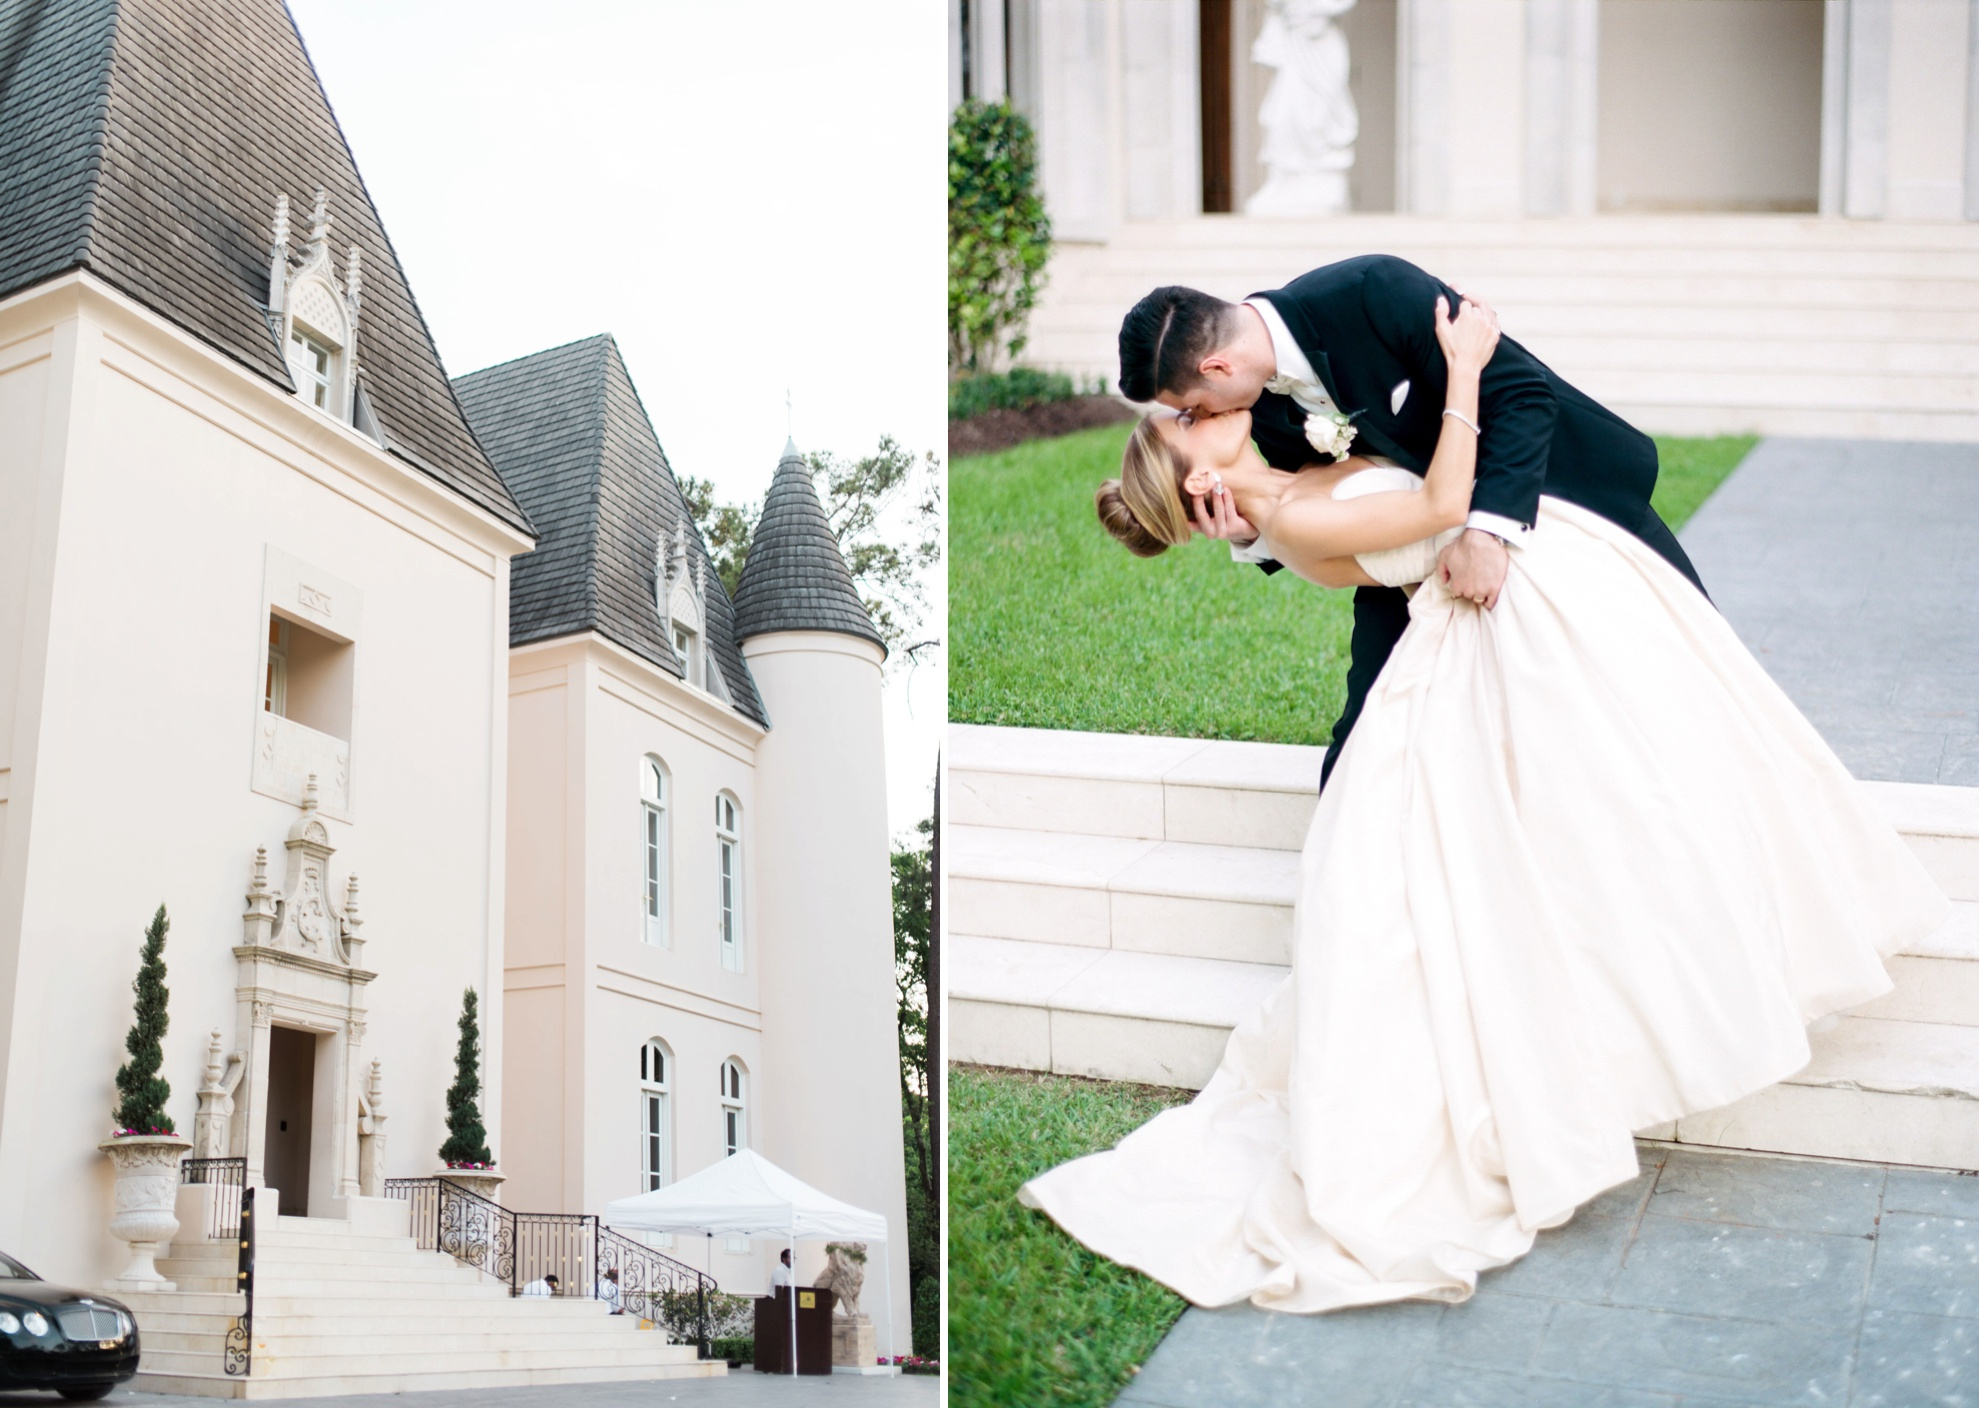 Chateau-Cocomar-Wedding-Photographer-Ceremony-Reception-Houston-Dana-Fernandez-Photographer-Film-9.jpg